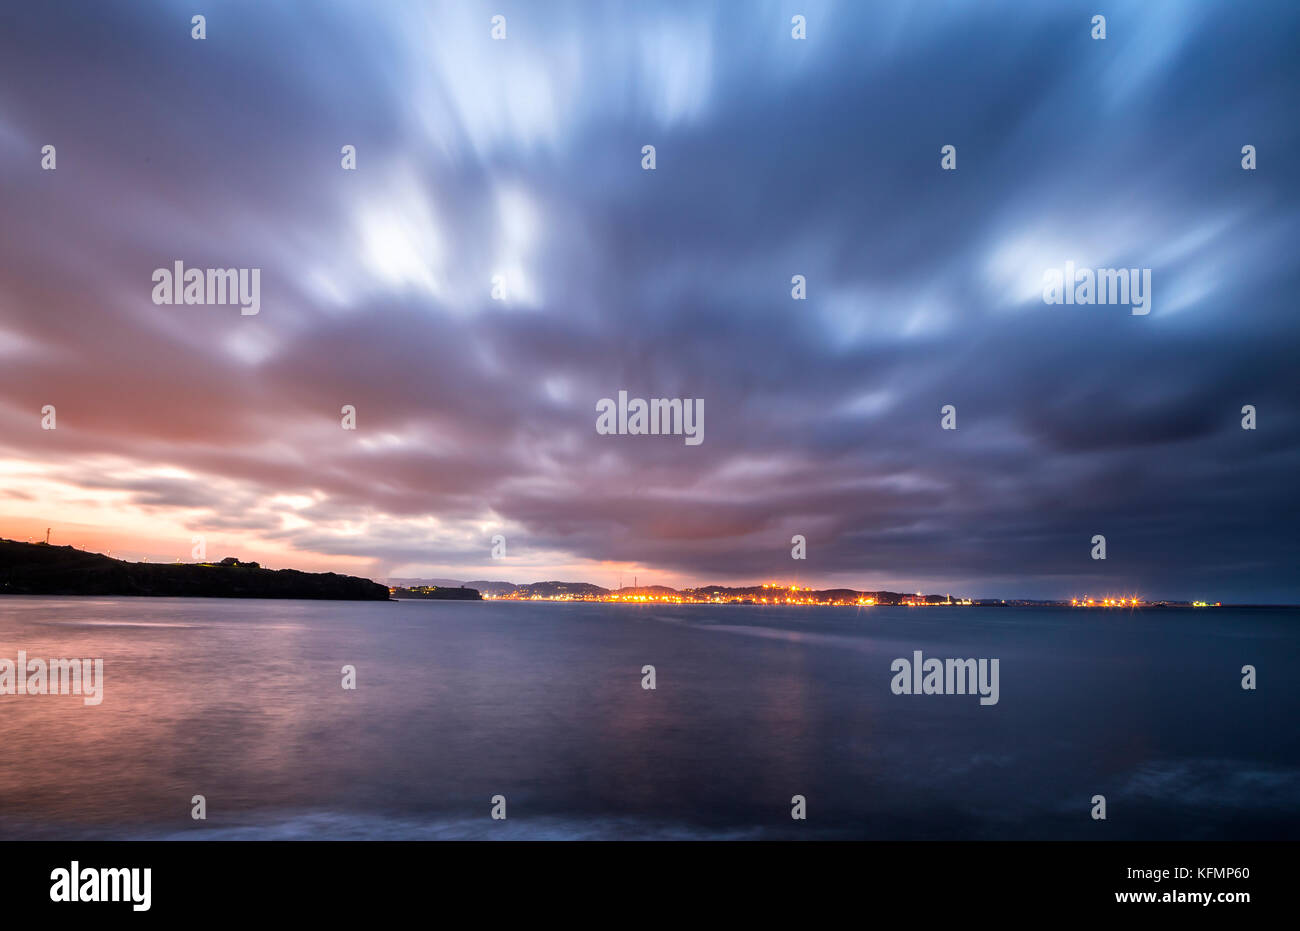 Sunset over city lights with moving clouds - Gijón, Asturias Spain - Stock Image